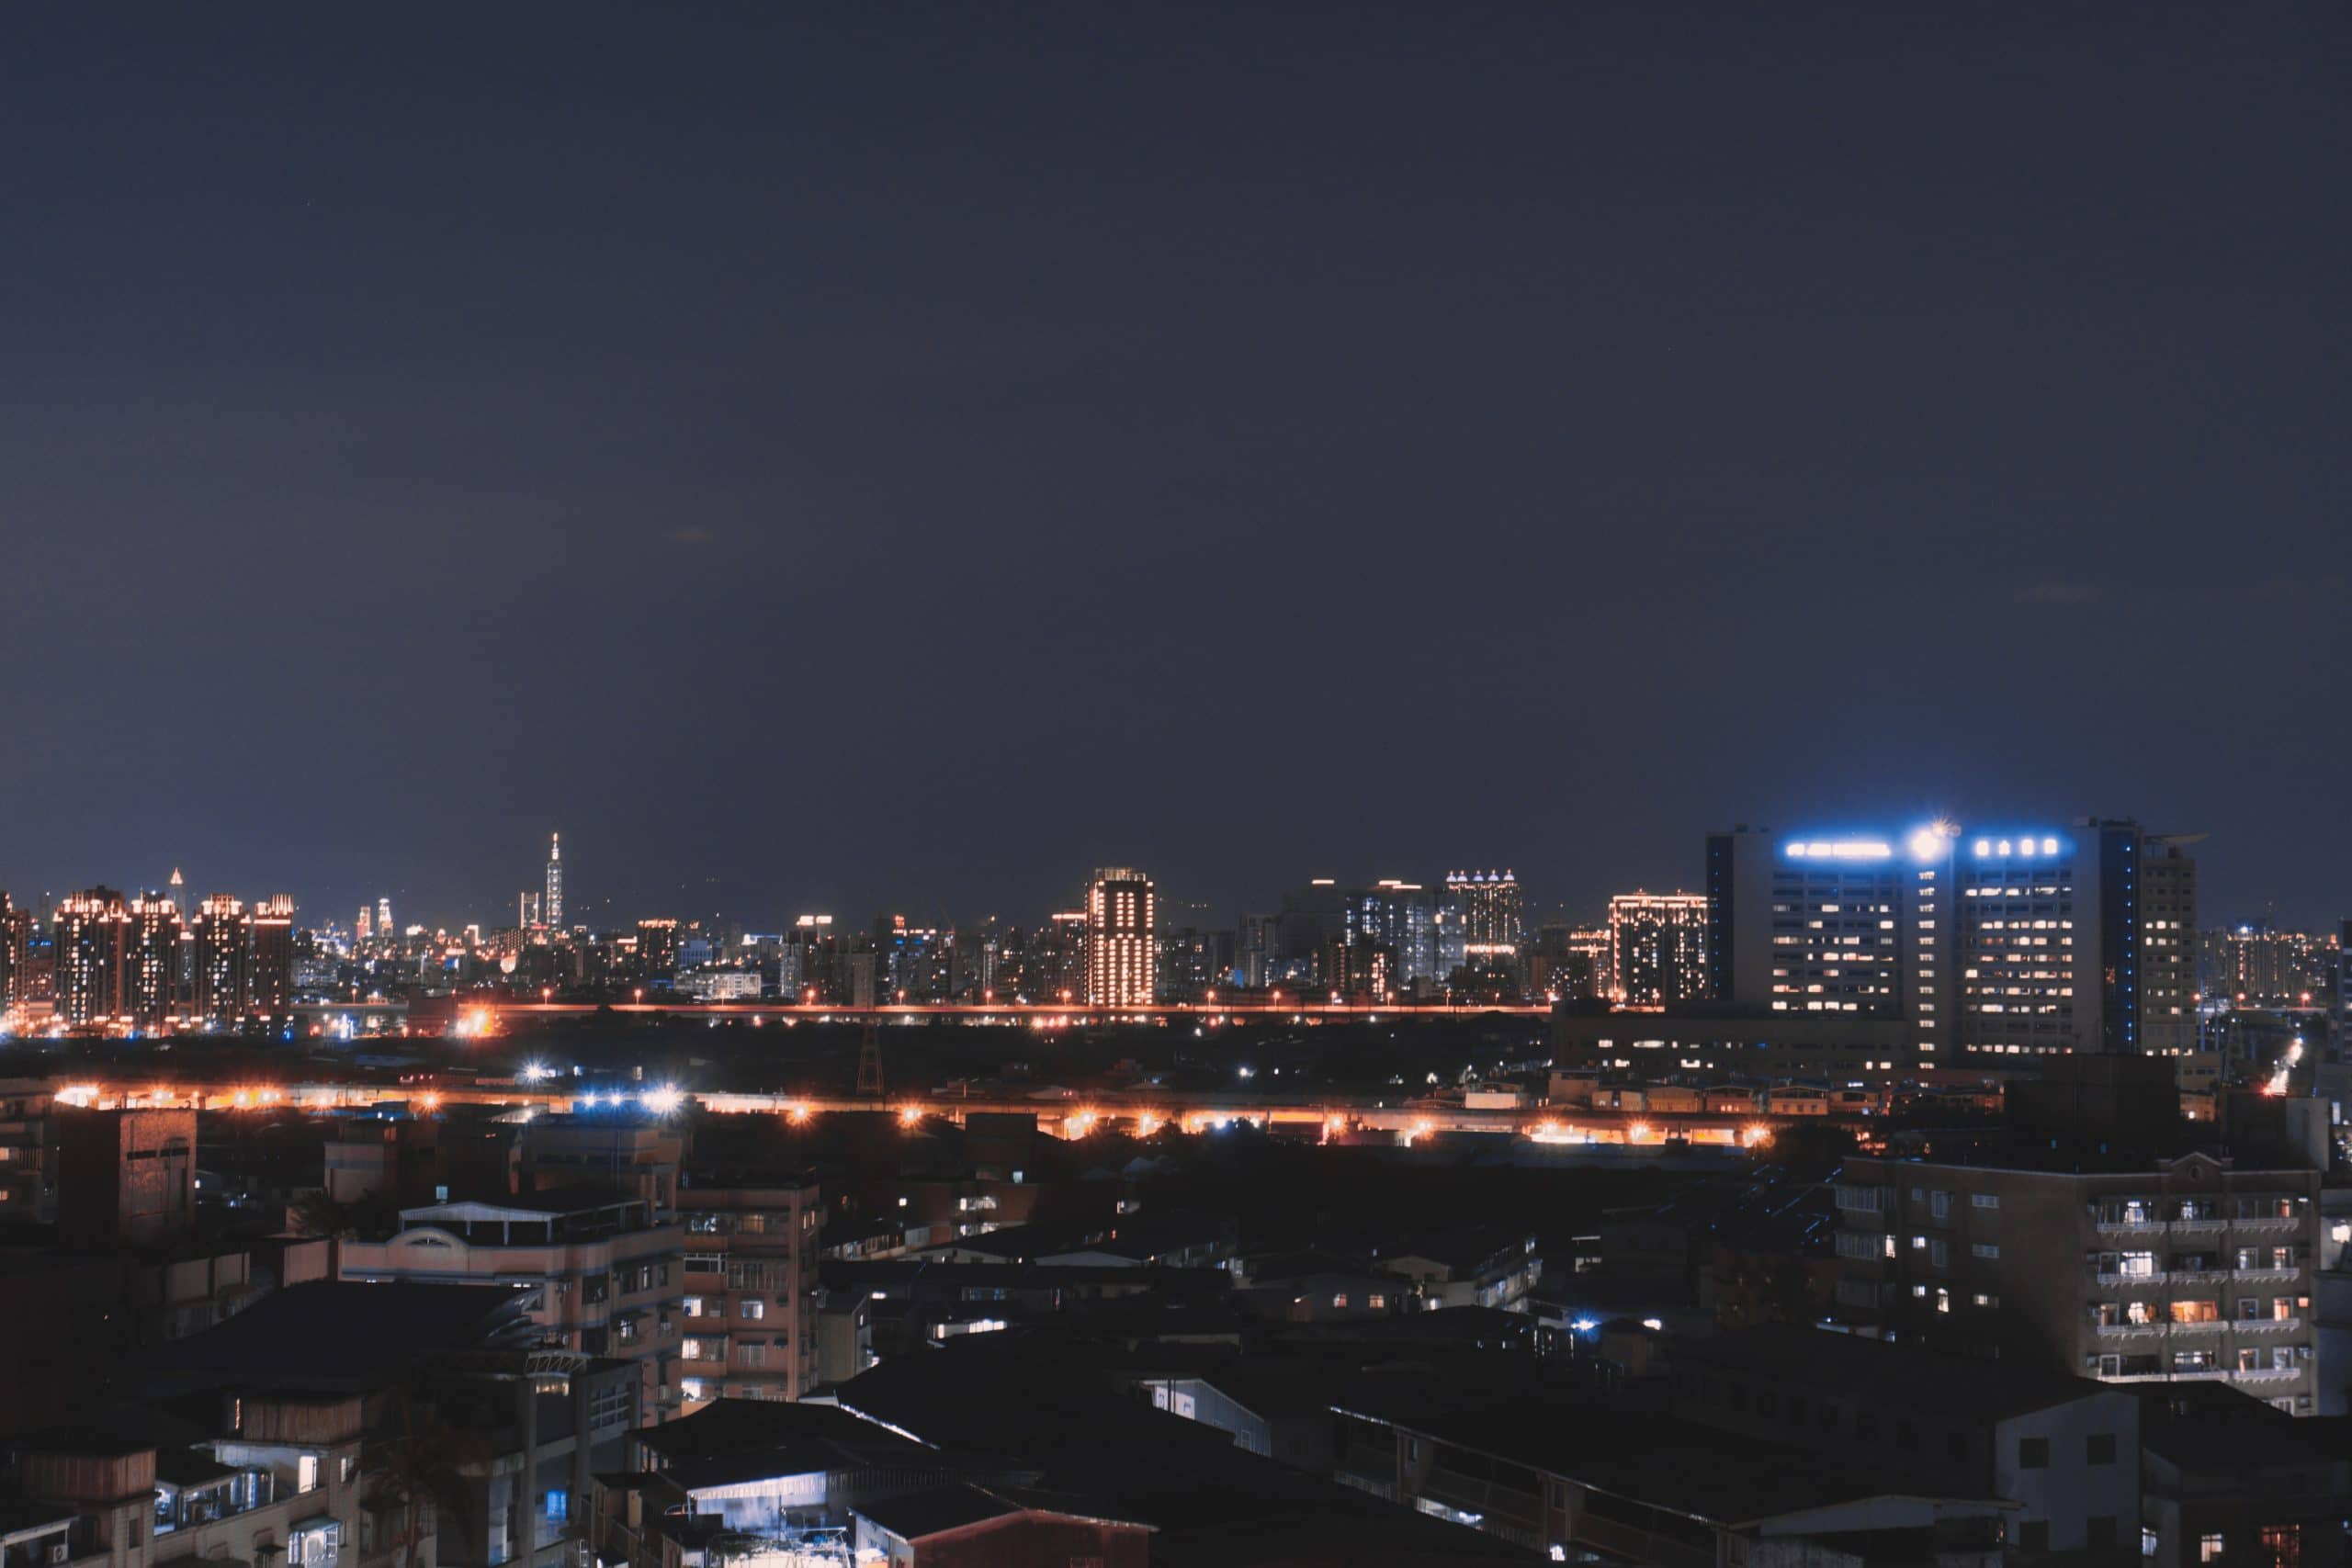 cityscape - Tips for Low Light Photography